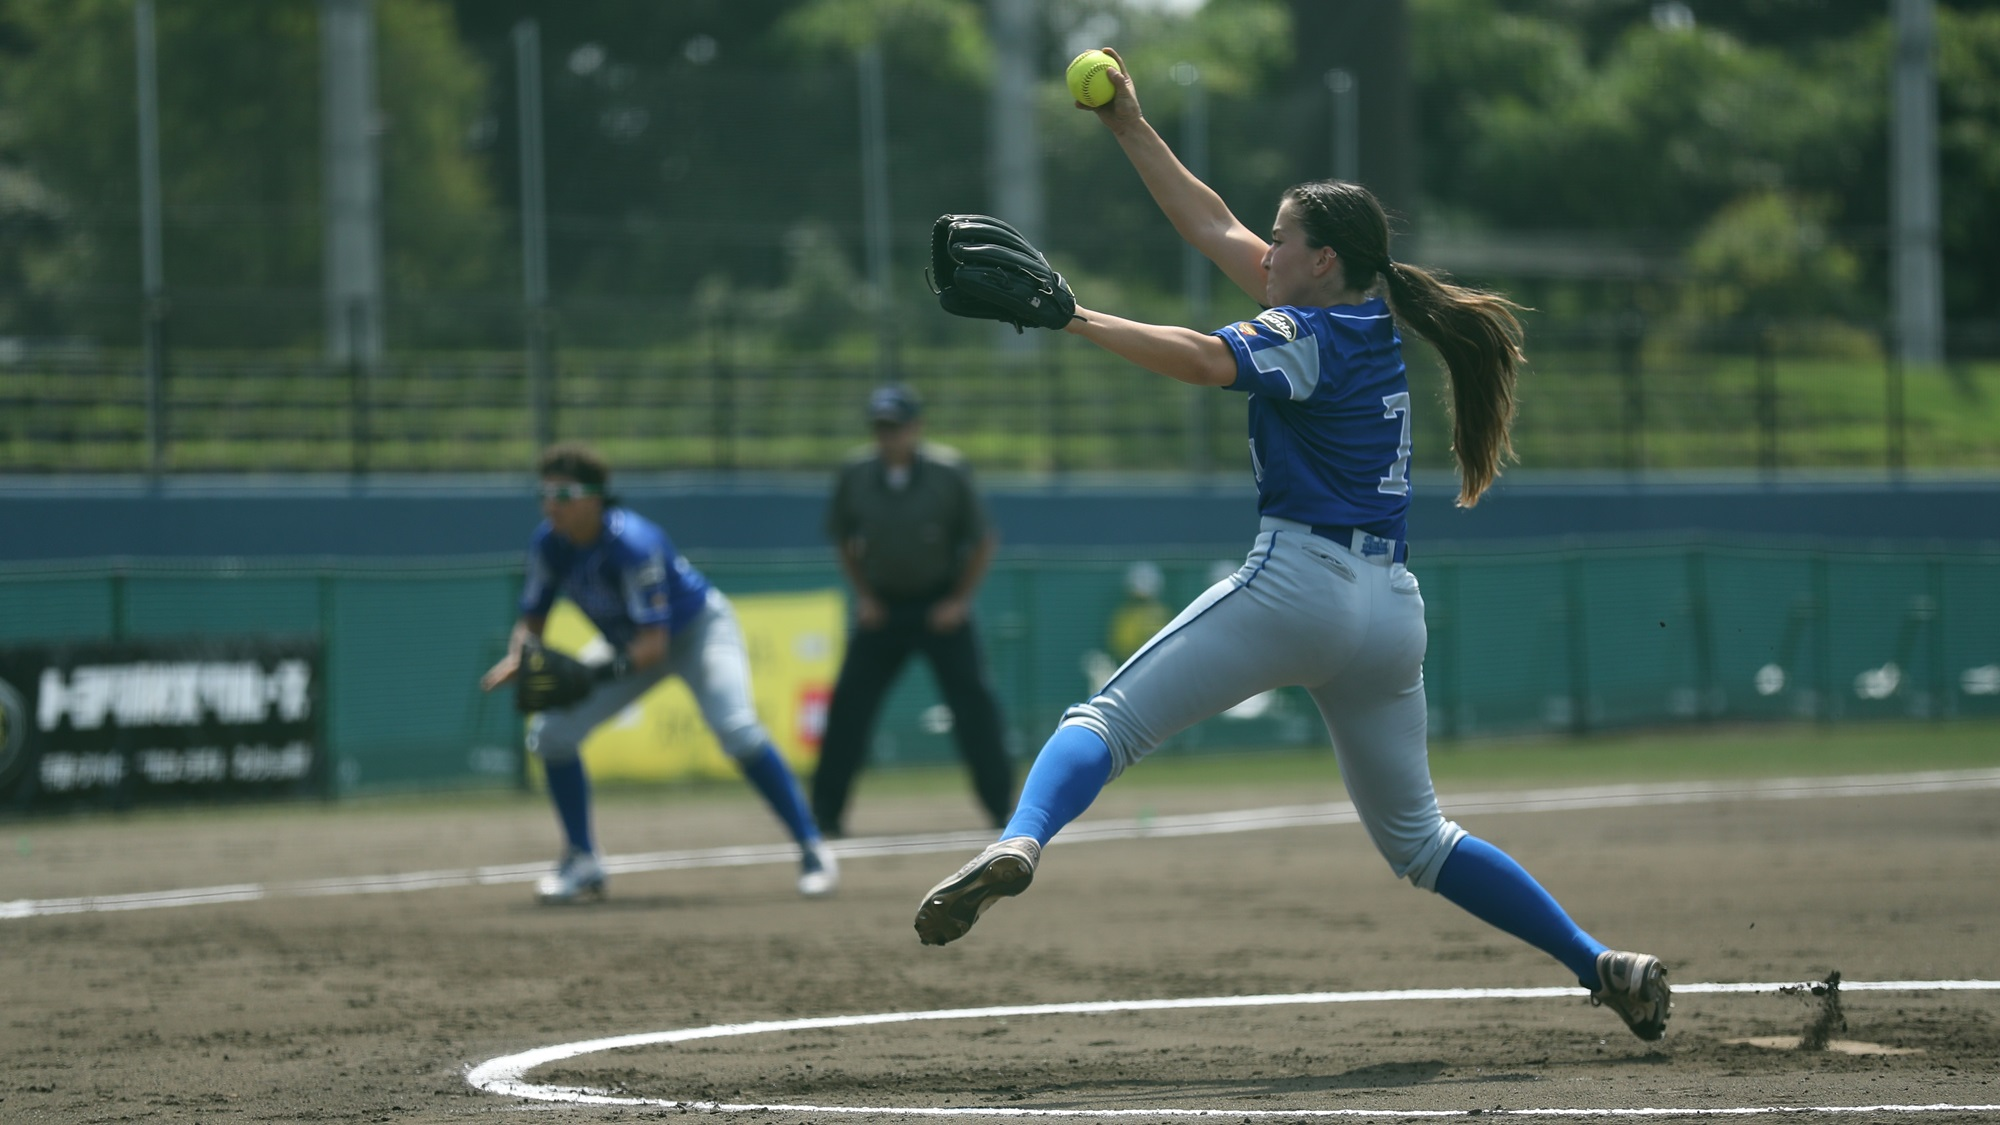 Ilaria Cacciamani took a no hitter into the fourth